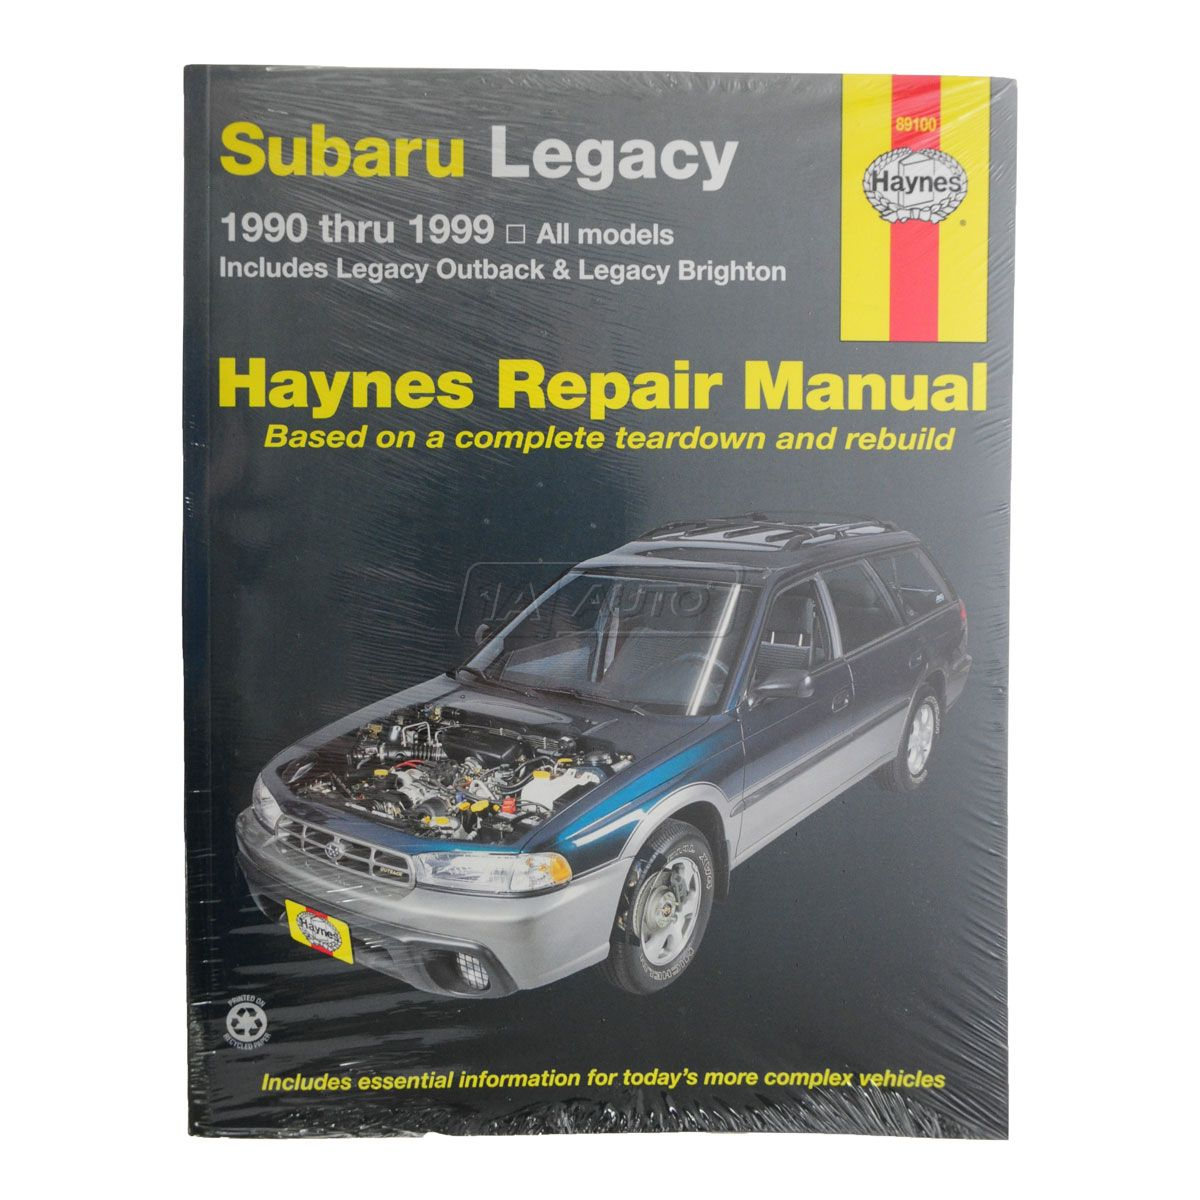 haynes repair manual for subaru legacy outback 90 99 ebay rh ebay co uk  1997 subaru legacy outback owners manual pdf subaru legacy wagon owners  manual